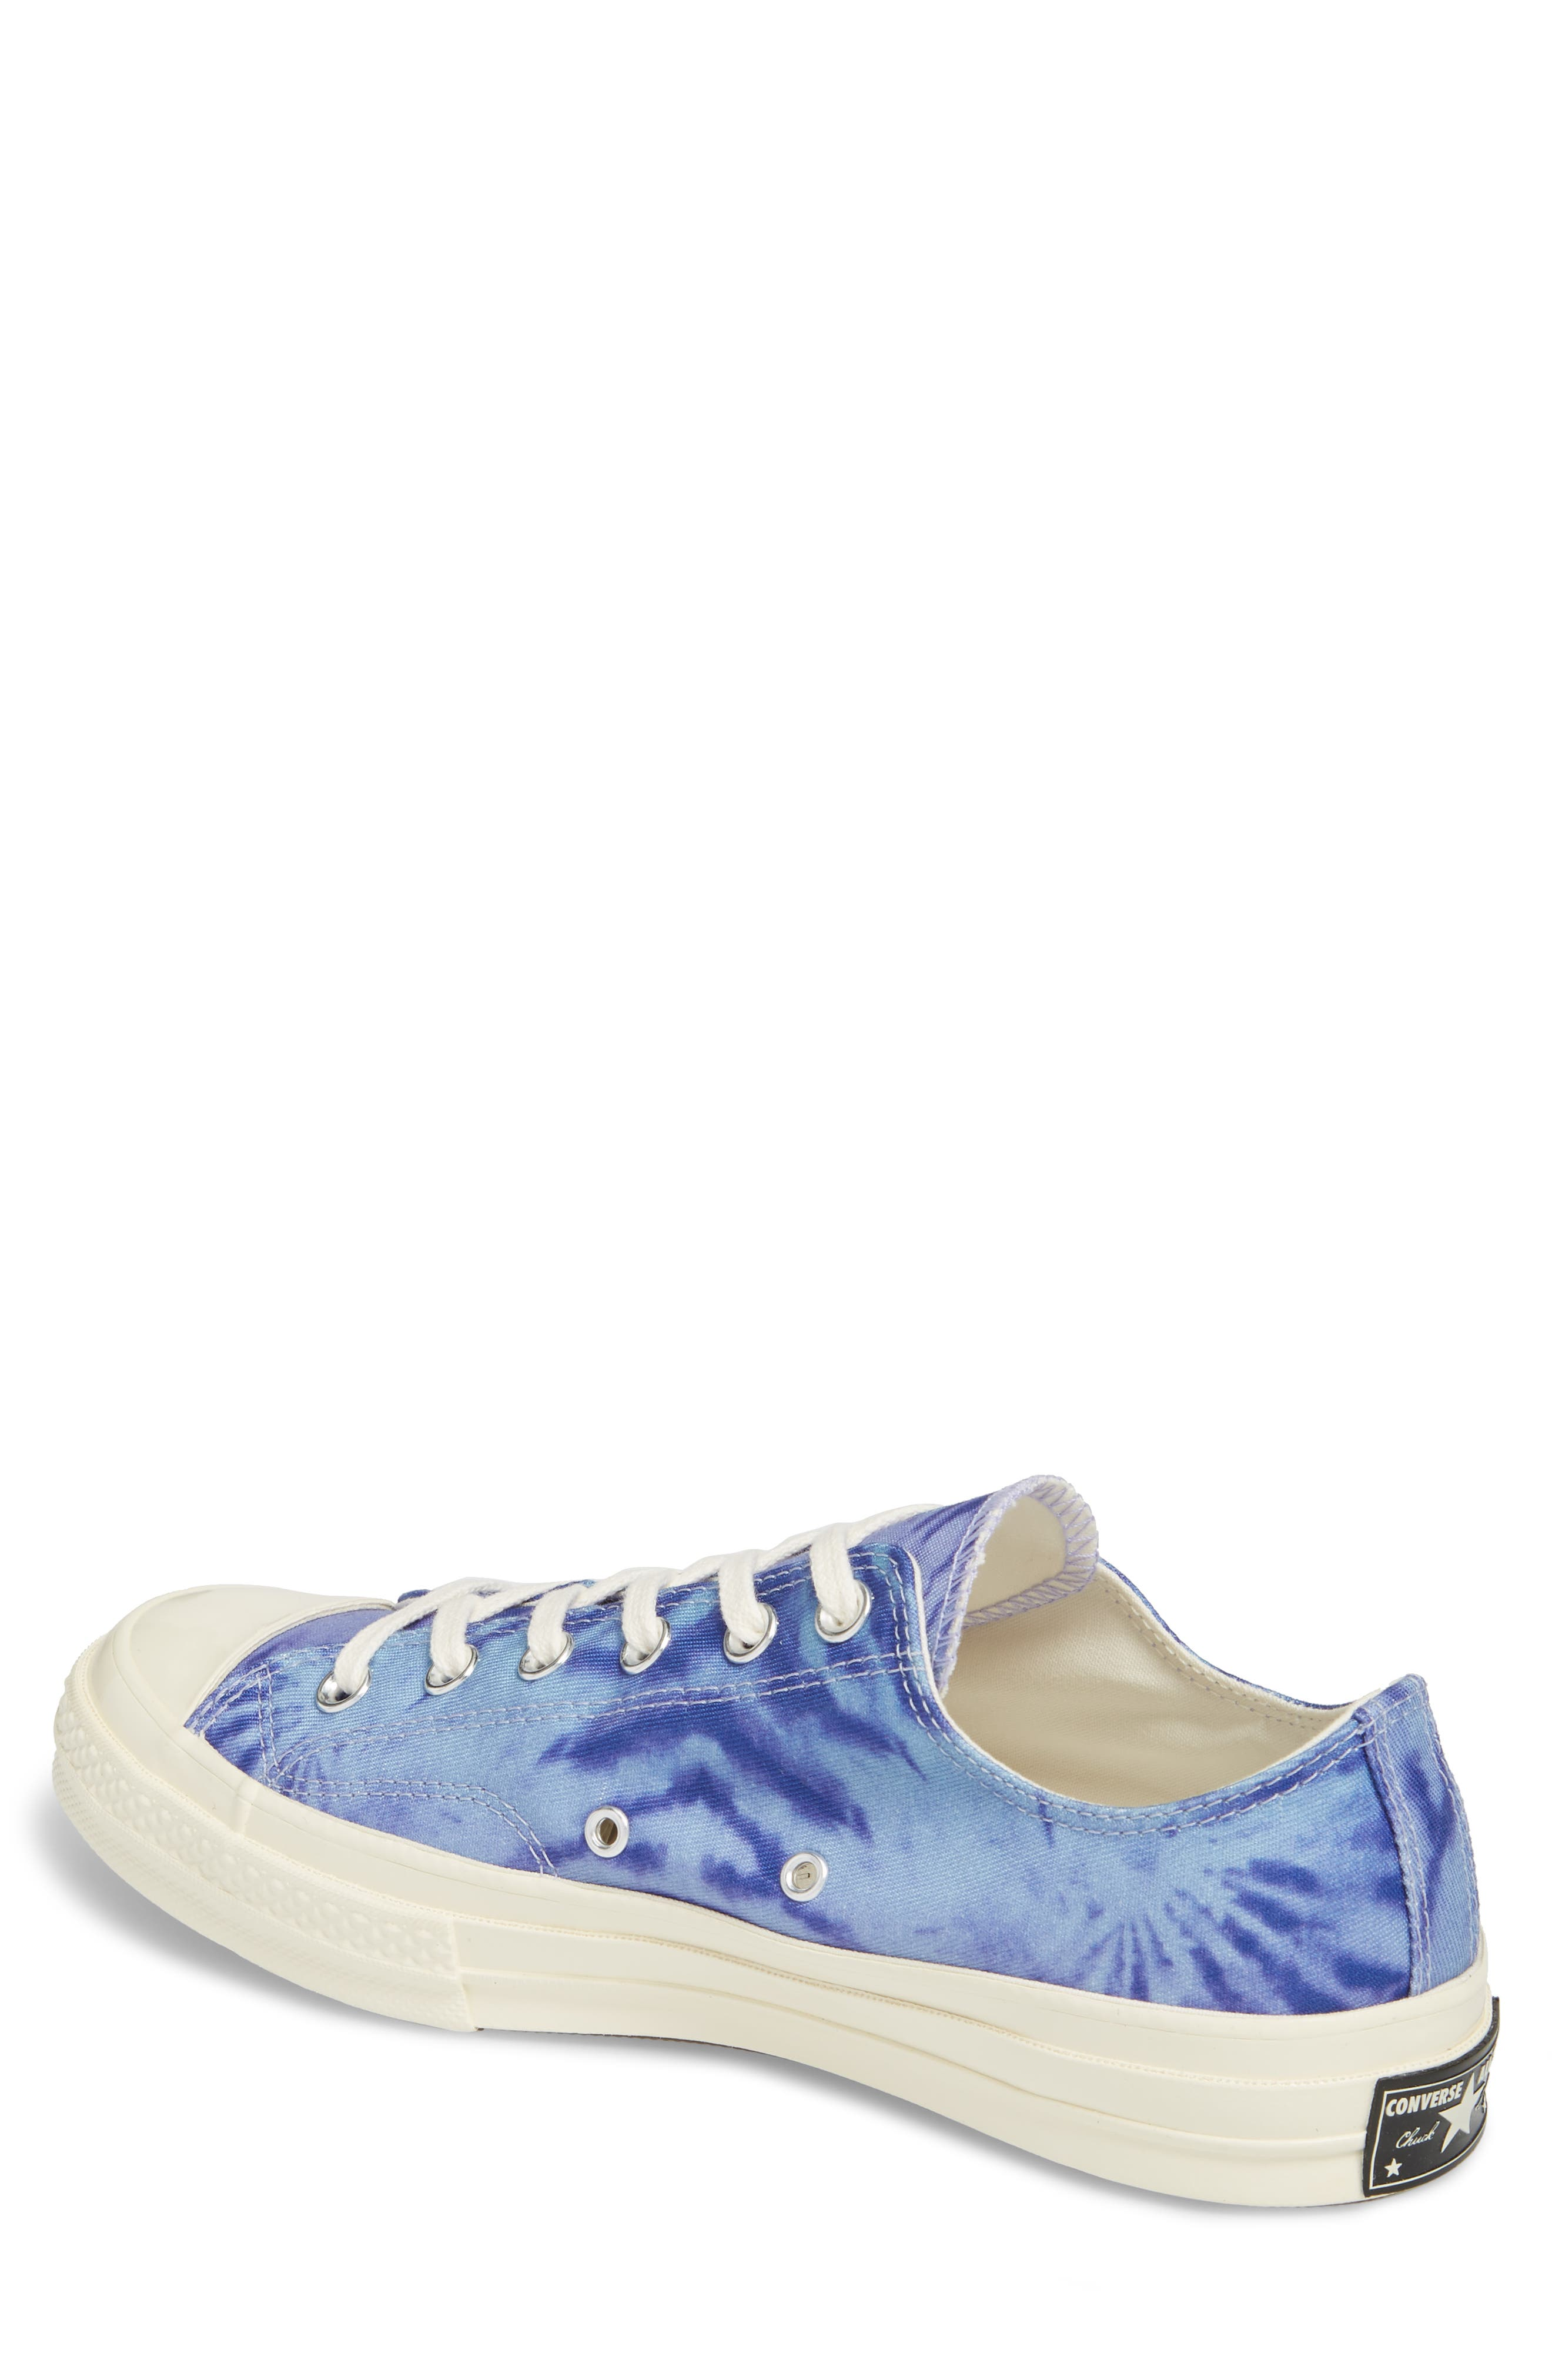 Chuck Taylor<sup>®</sup> All Star<sup>®</sup> 70 Tie Dye Low Top Sneaker,                             Alternate thumbnail 2, color,                             400